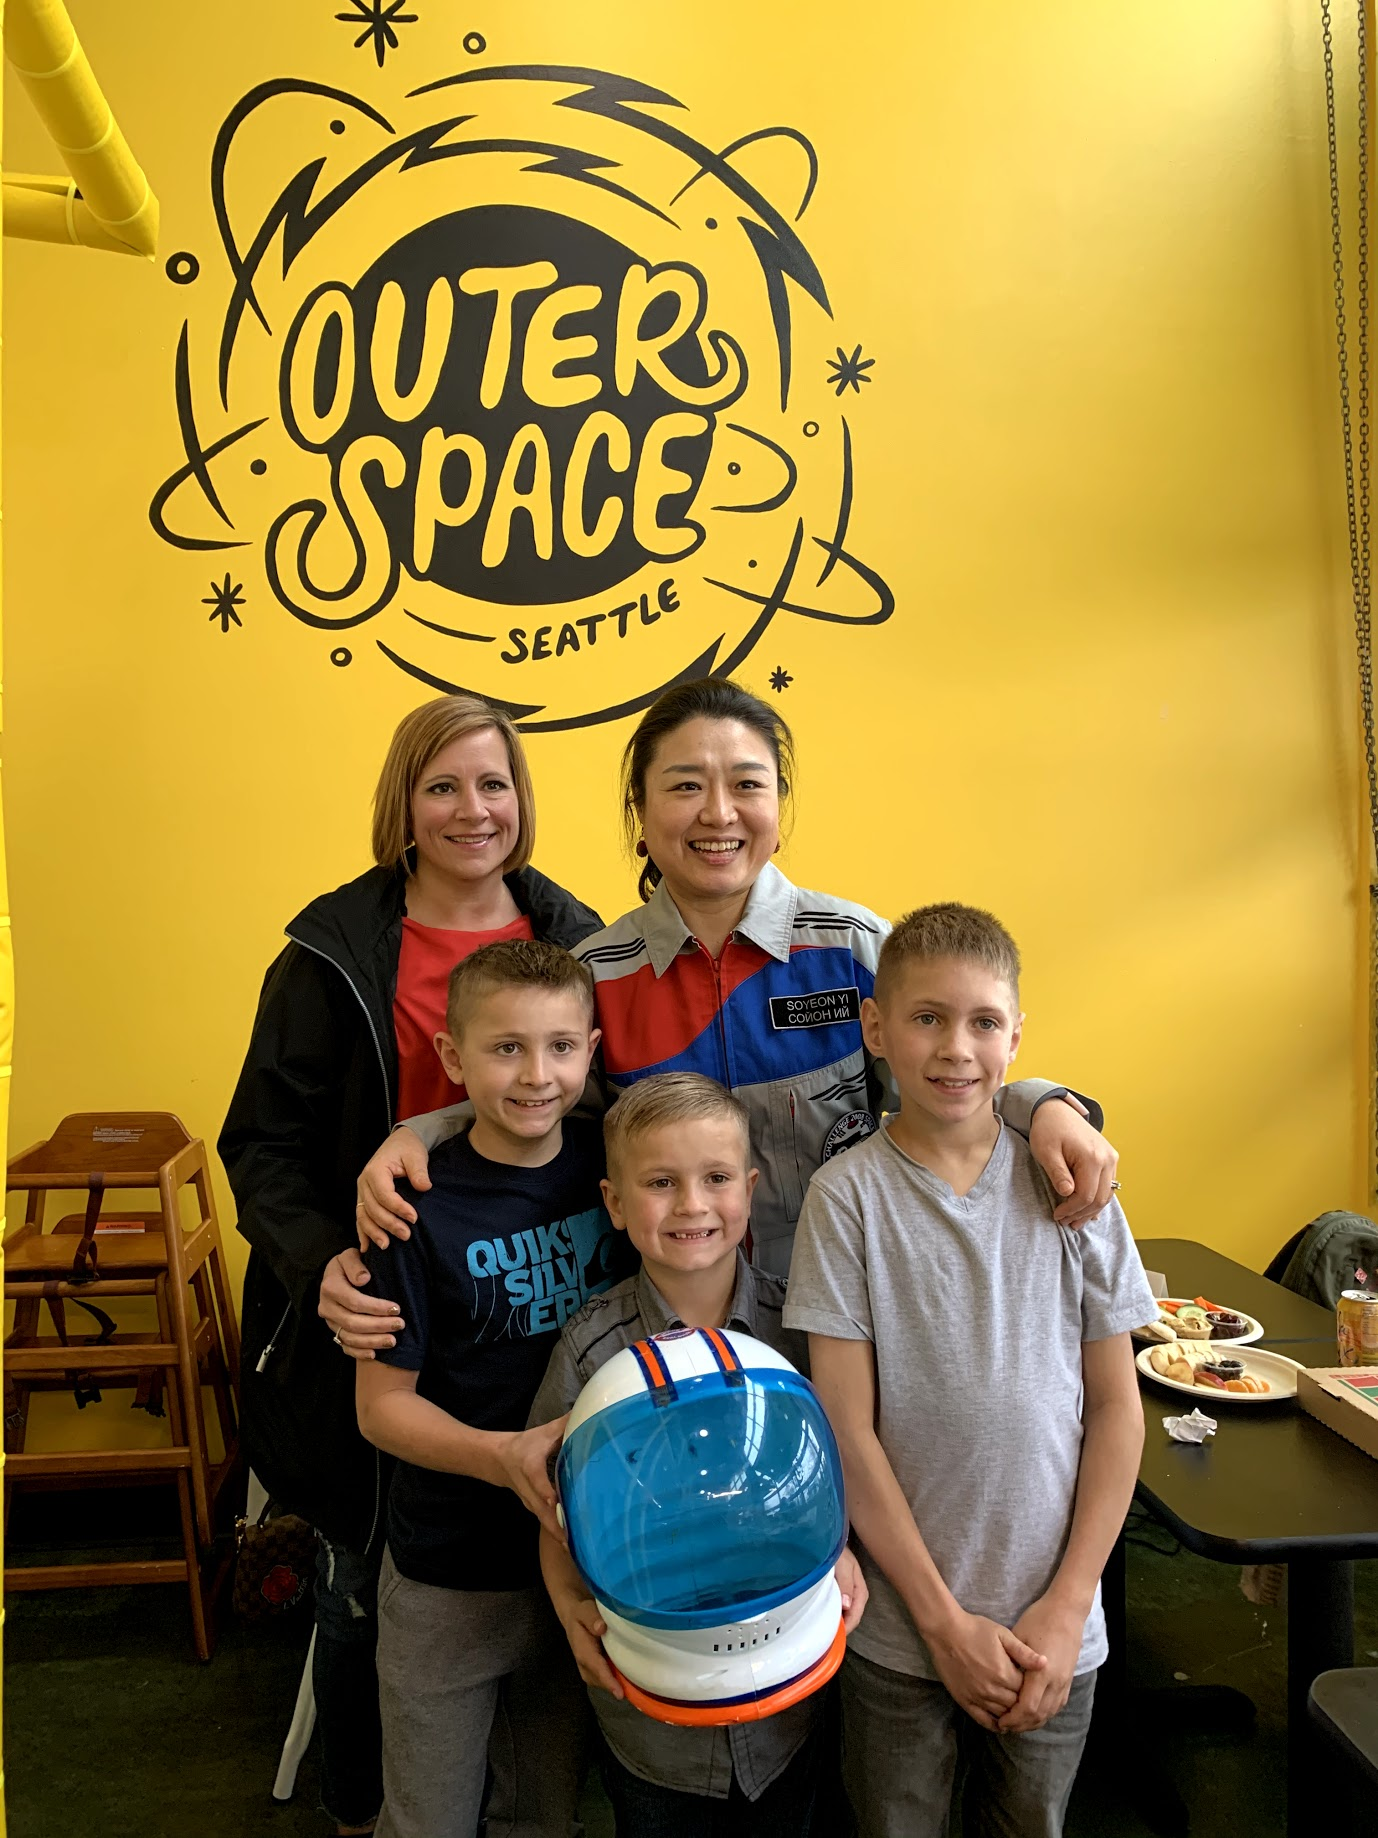 "Dr. Soyeon Yi, the first&nbsp;South Korean astronaut and 49th woman in space, stopped by to visit Outer Space Seattle this week, much to the kids joy! Outer Space Seattle is a space-themed indoor playspace for kids of all abilities that<a href=""http://seattlerefined.com/lifestyle/this-new-play-space-is-out-of-this-world"" target=""_blank"" title=""http://seattlerefined.com/lifestyle/this-new-play-space-is-out-of-this-world"">&nbsp;just opened after one passionate mom's journey from a kickstarter</a>, to a brick and mortar play area. Dr. Yi has just visited Alki Elementary when she swung by the play space, where she had&nbsp;lunch, spoke to kids about what it was like to travel through space, answered questions, talked about how important it is to exercise your body, and signed the custom built rocket. (Image: Outer Space Seattle)"